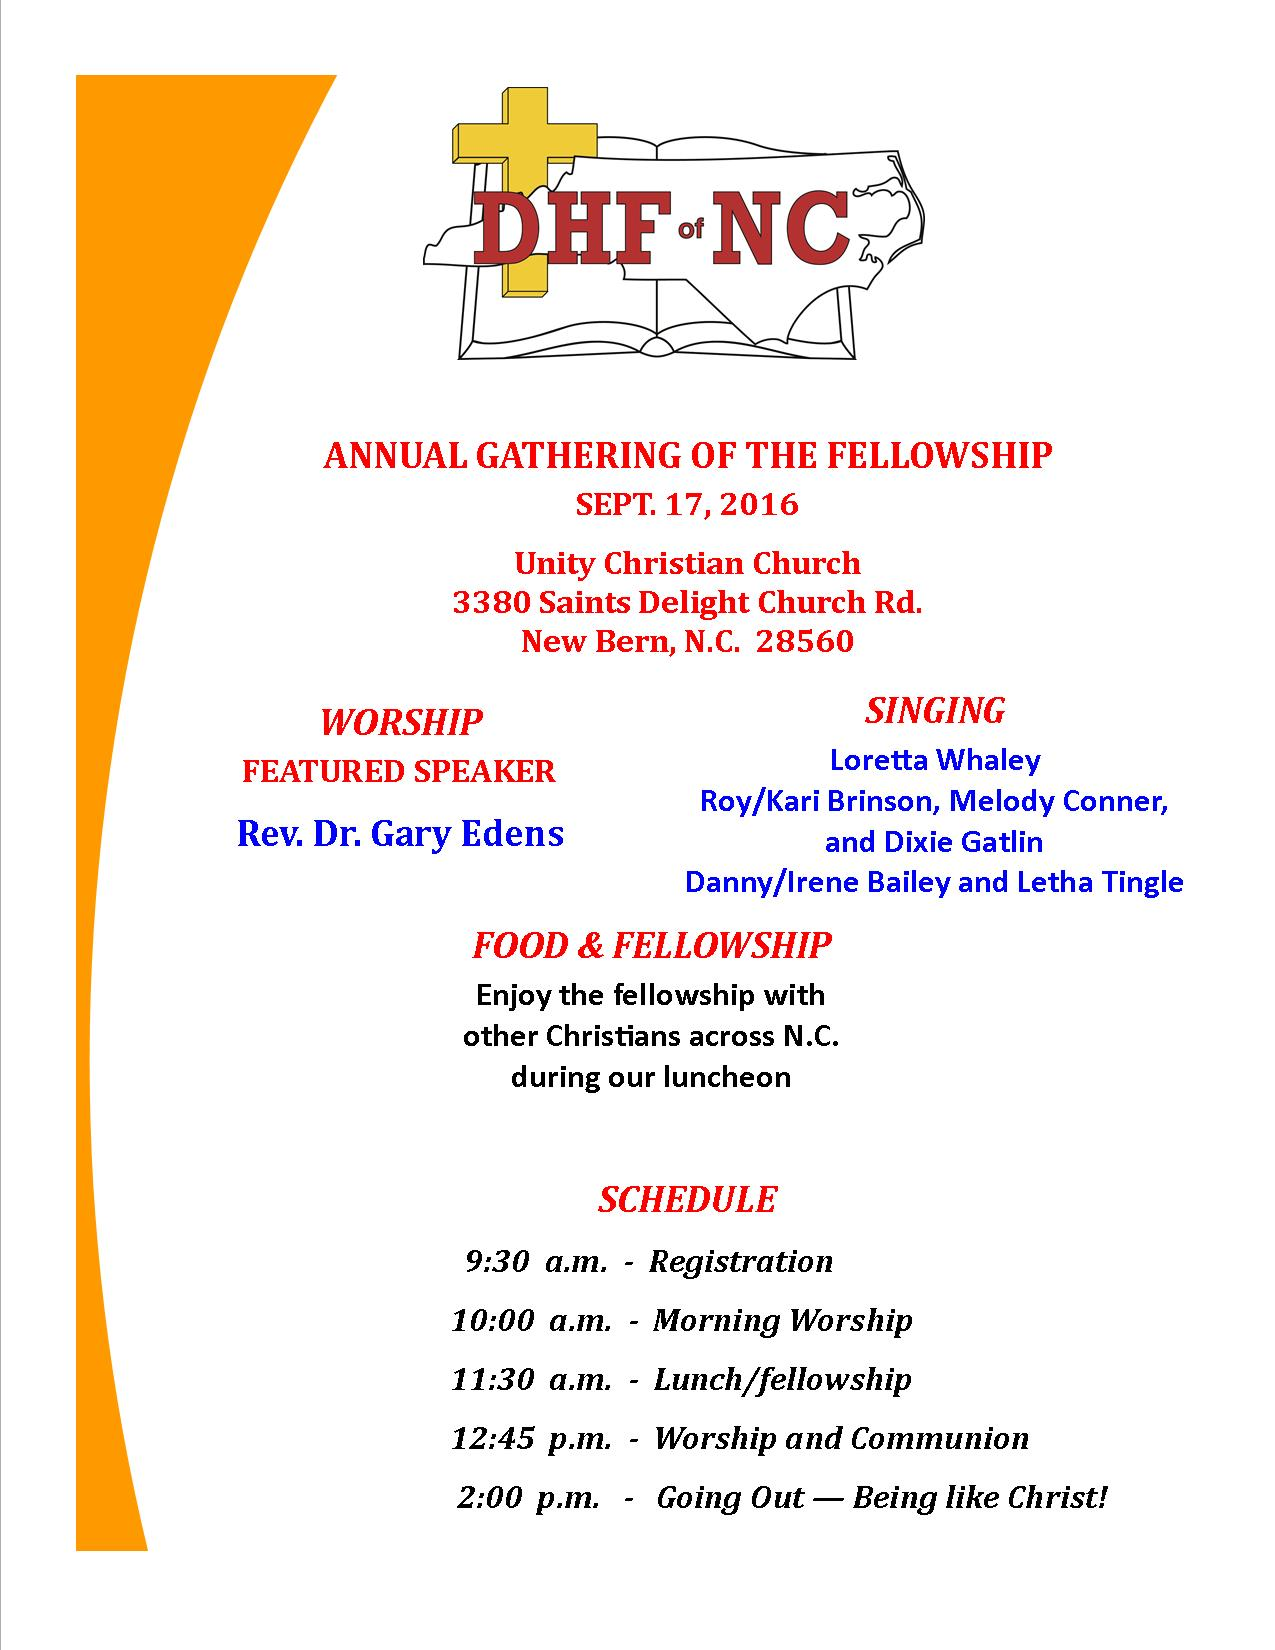 DHF of NC - ANNUAL GATHERING POSTER - 9-17-2016